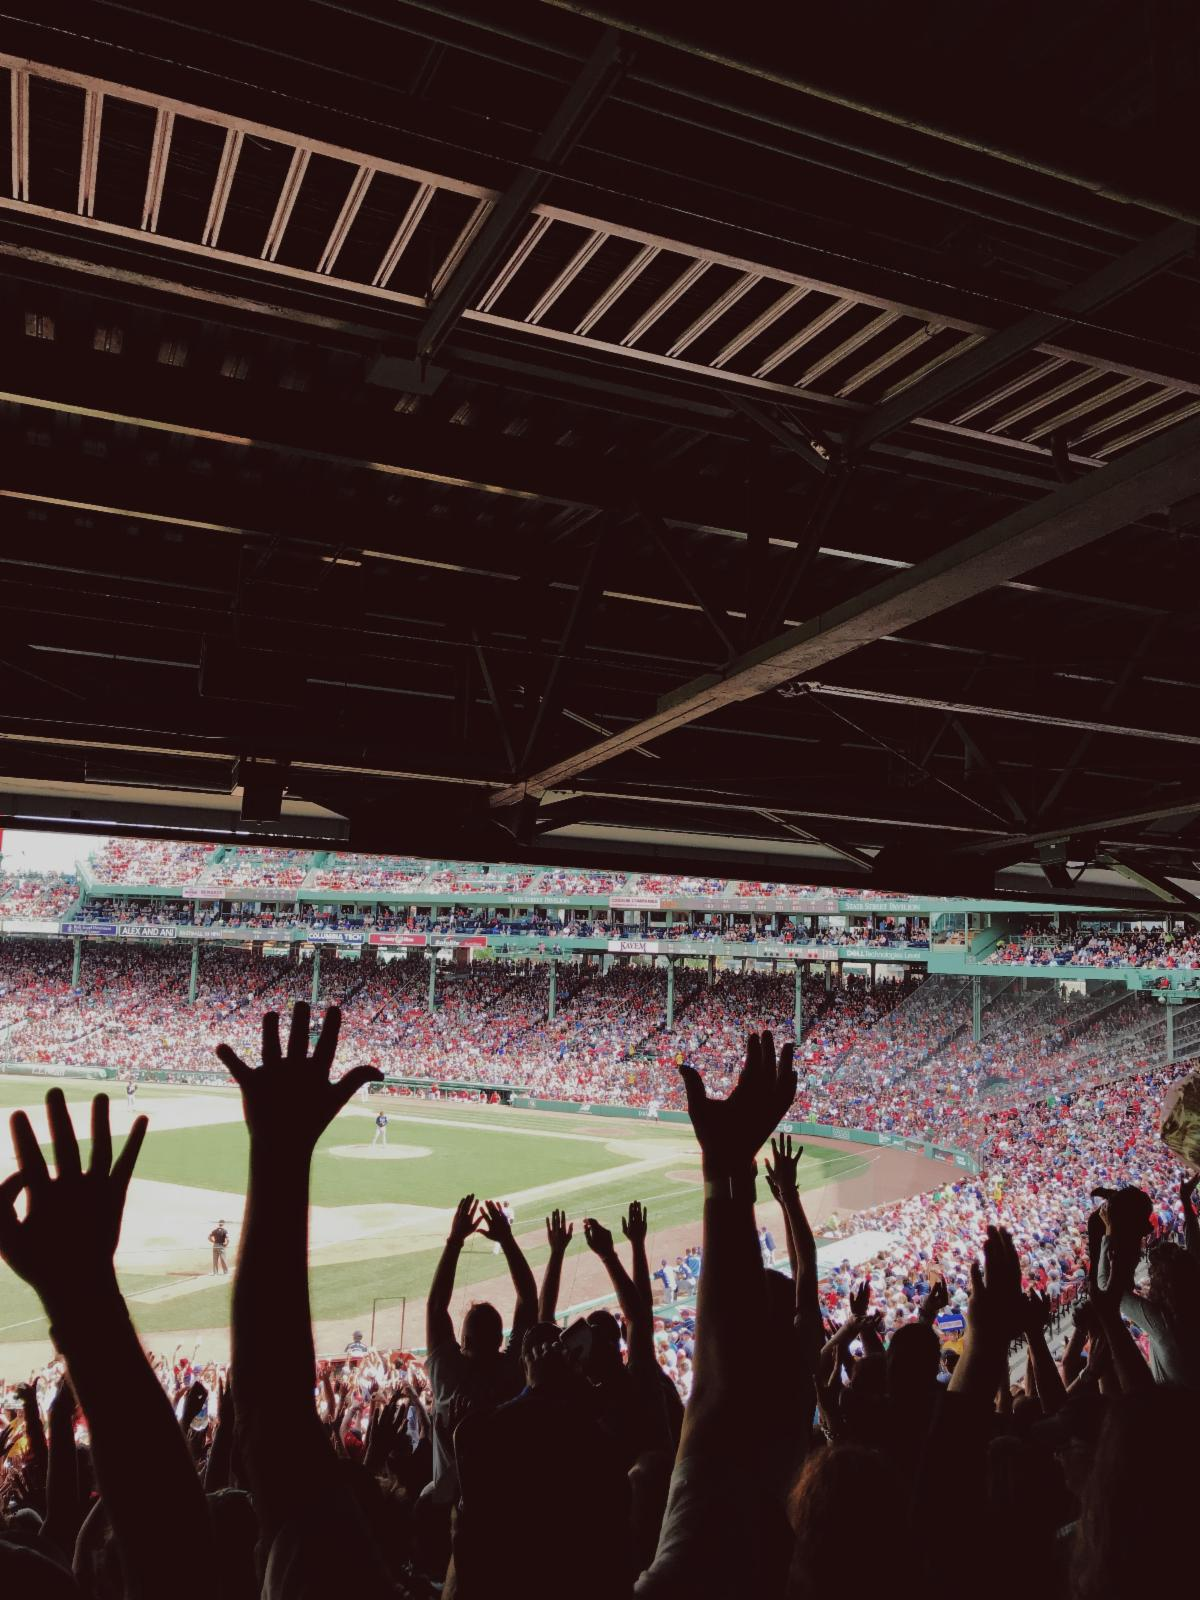 Picture of baseball fans with their arms up, cheering in the stands of a stadium.